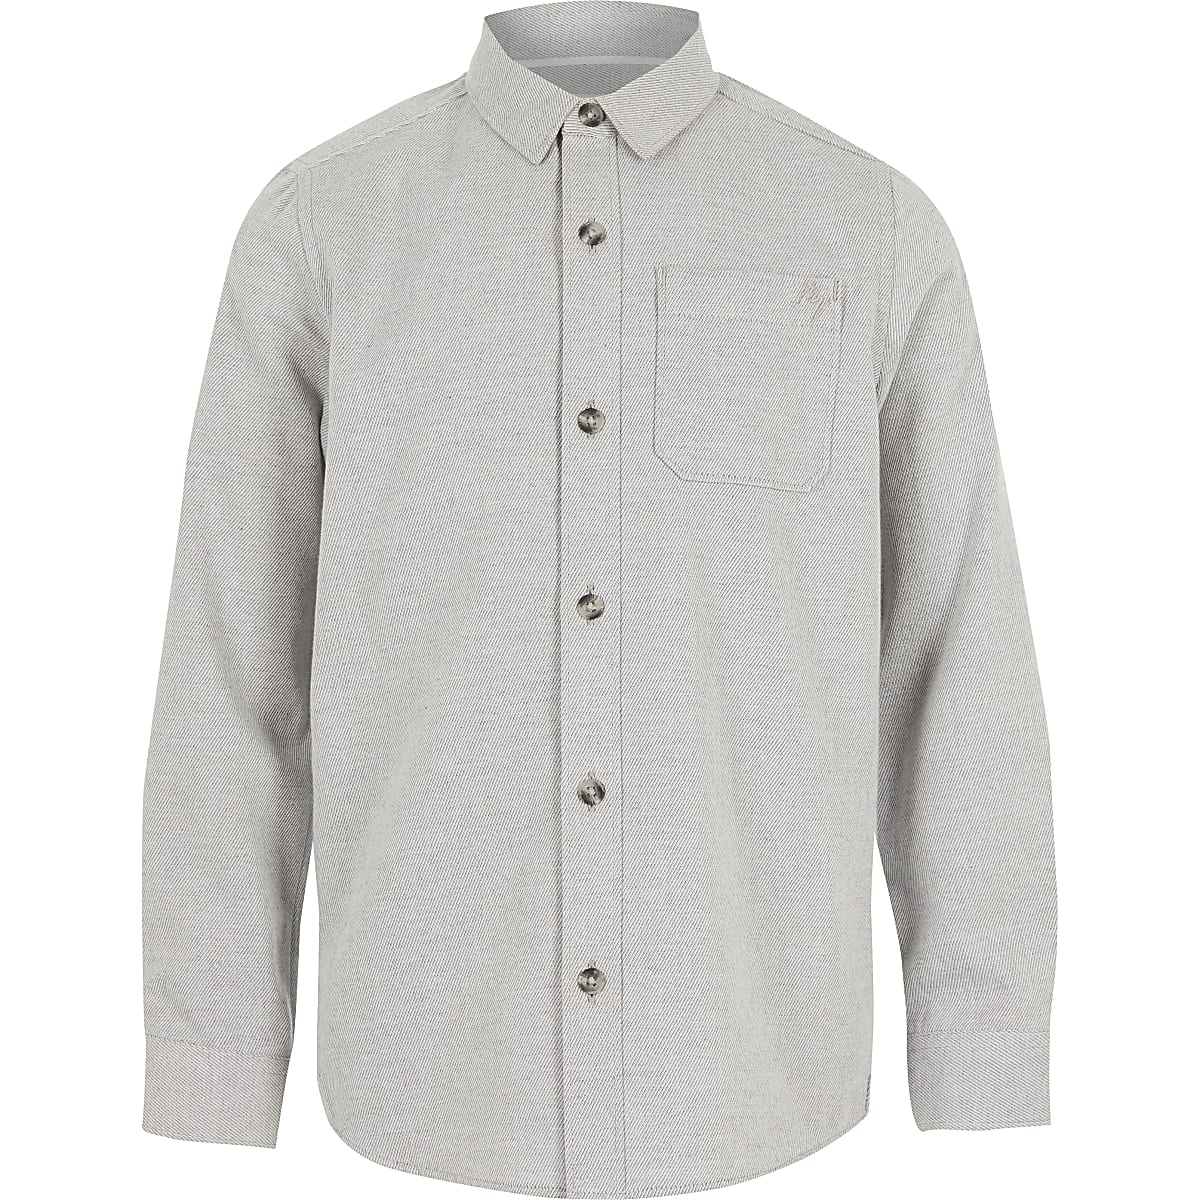 Boys grey long sleeve twill shirt